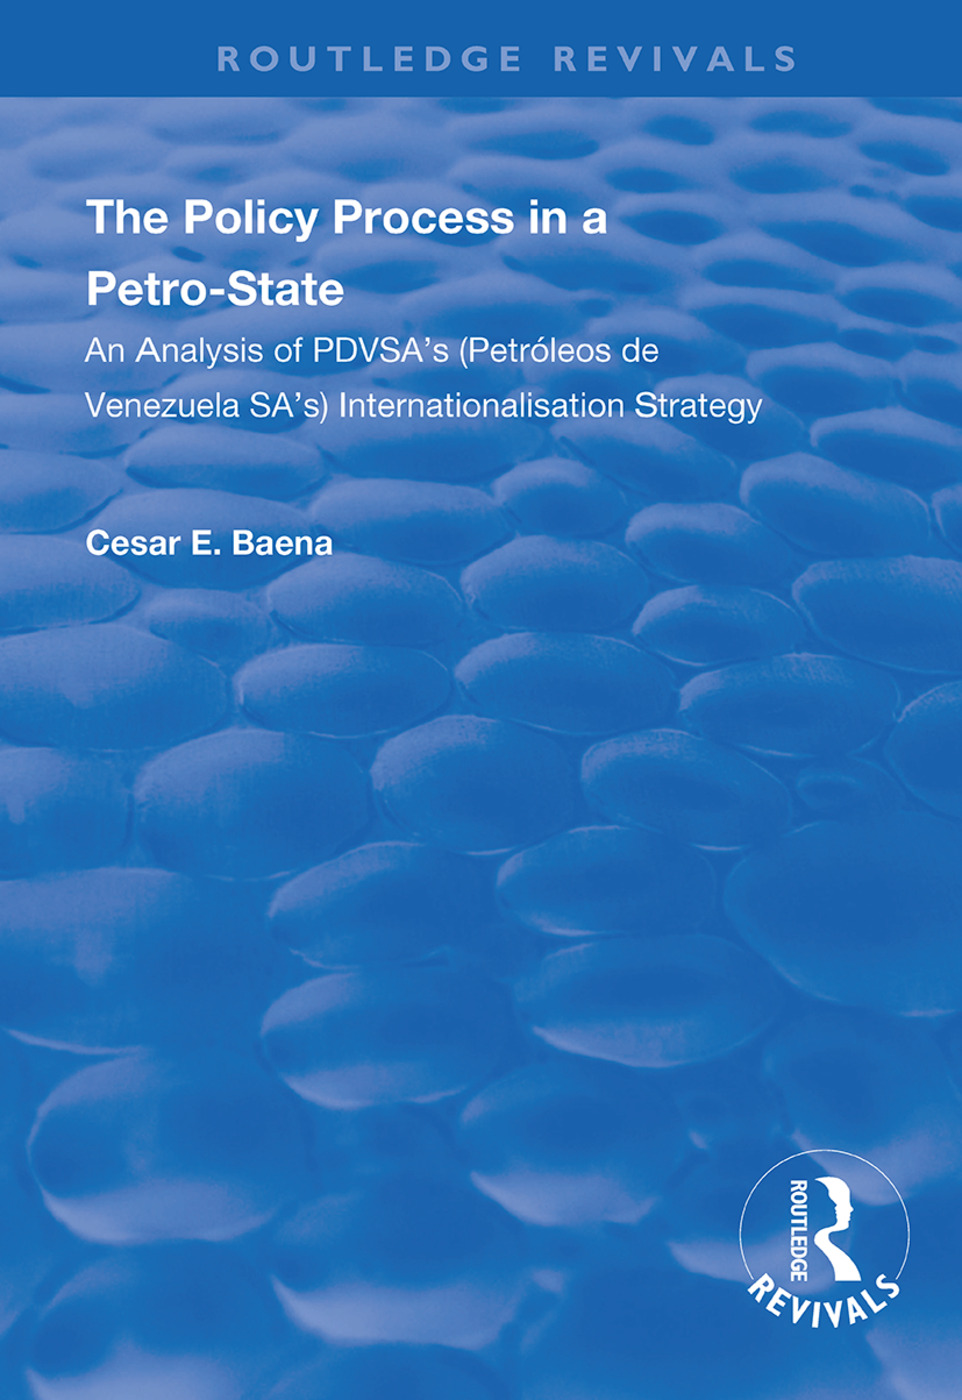 The Policy Process in a Petro-State